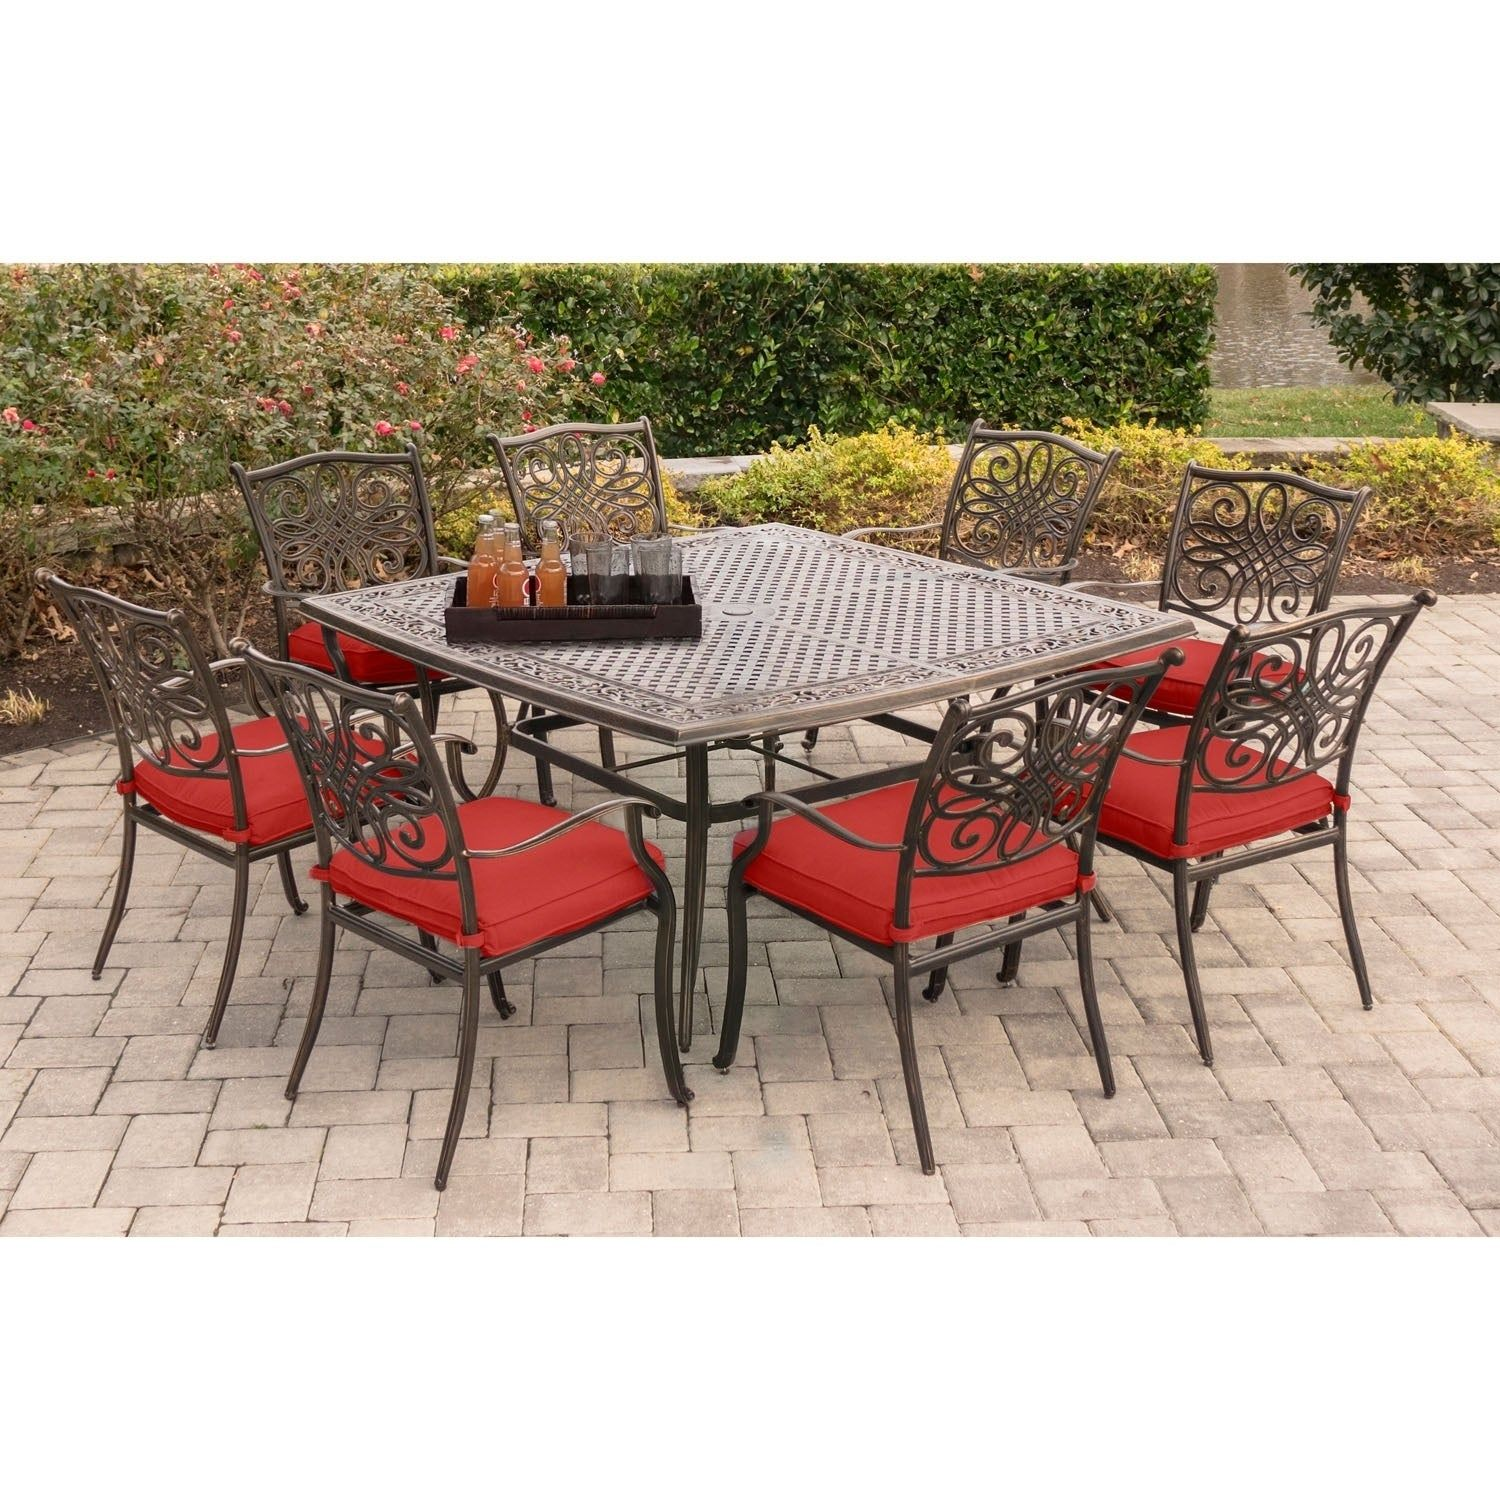 Hanover Traditions 9 Piece Square Dining Set In Red Aluminum Patio Dining Set Buy Outdoor Furniture Outdoor Dining Set